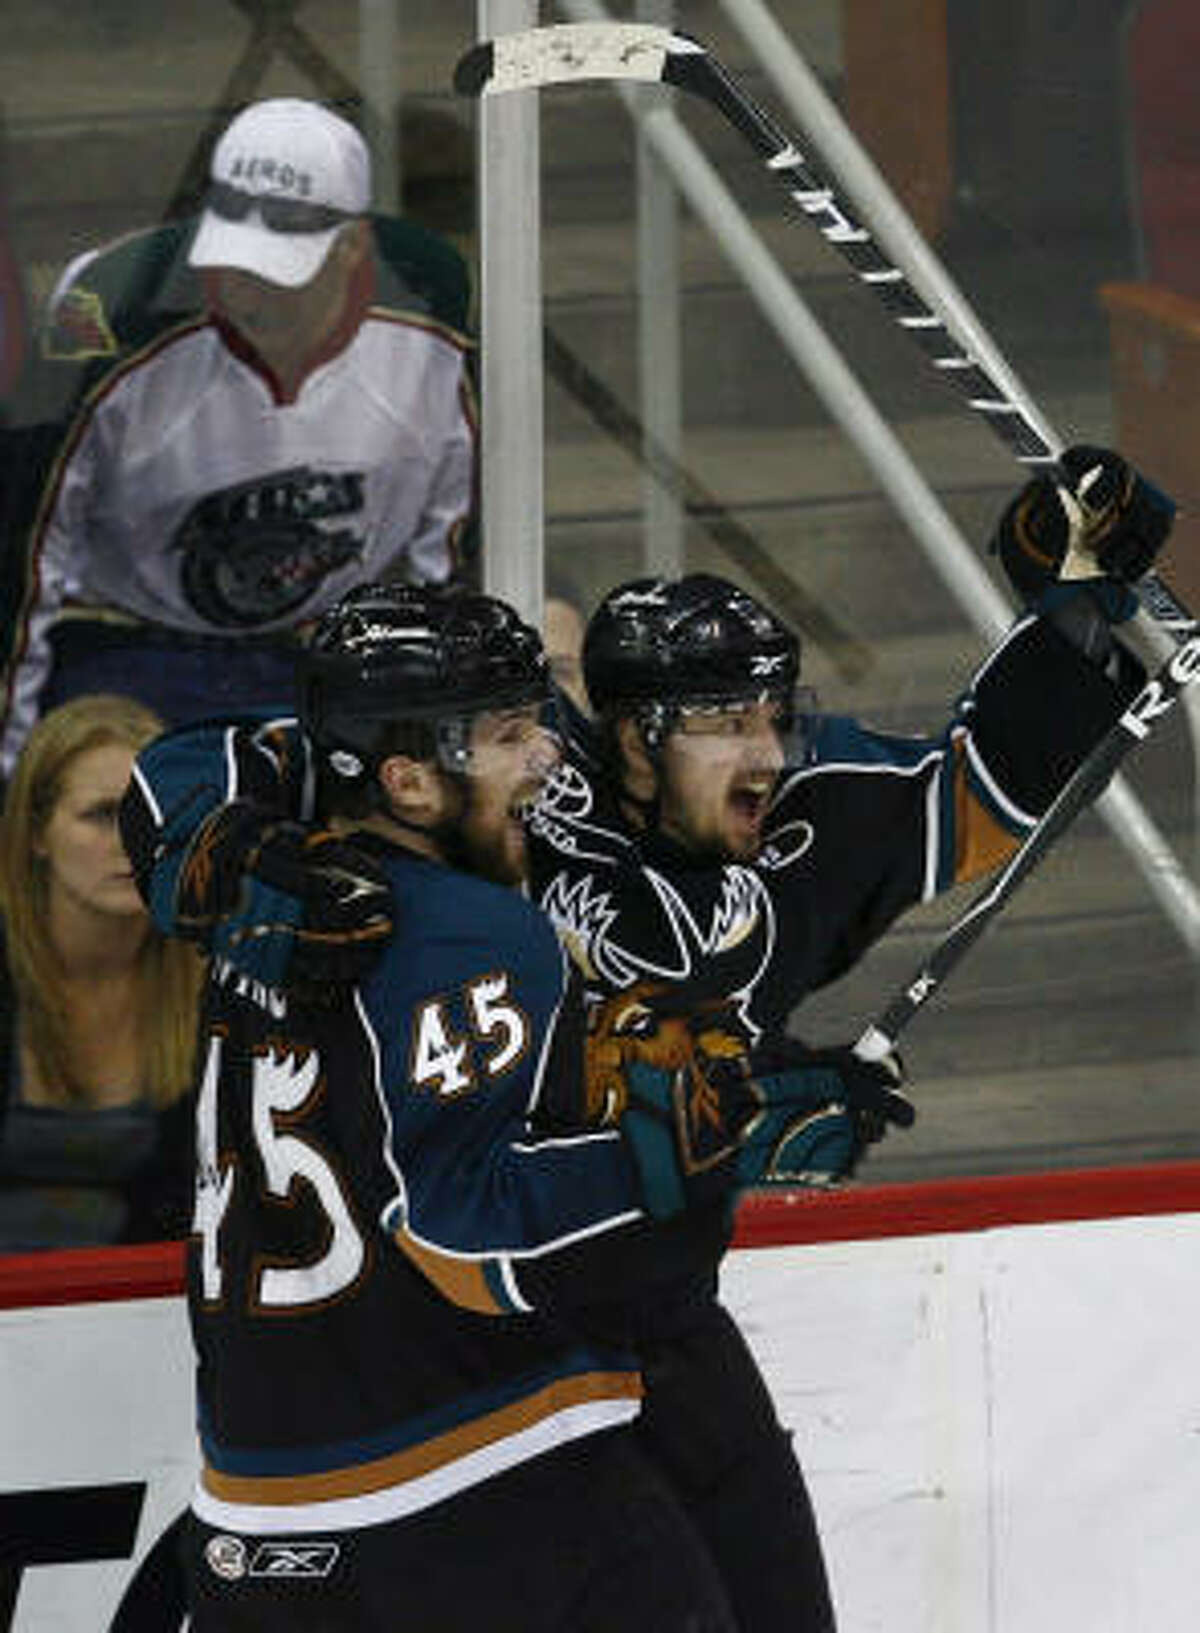 Manitoba's Michael Grabner (right) celebrates with Mark Fistric after scoring the winning goal in the third period.